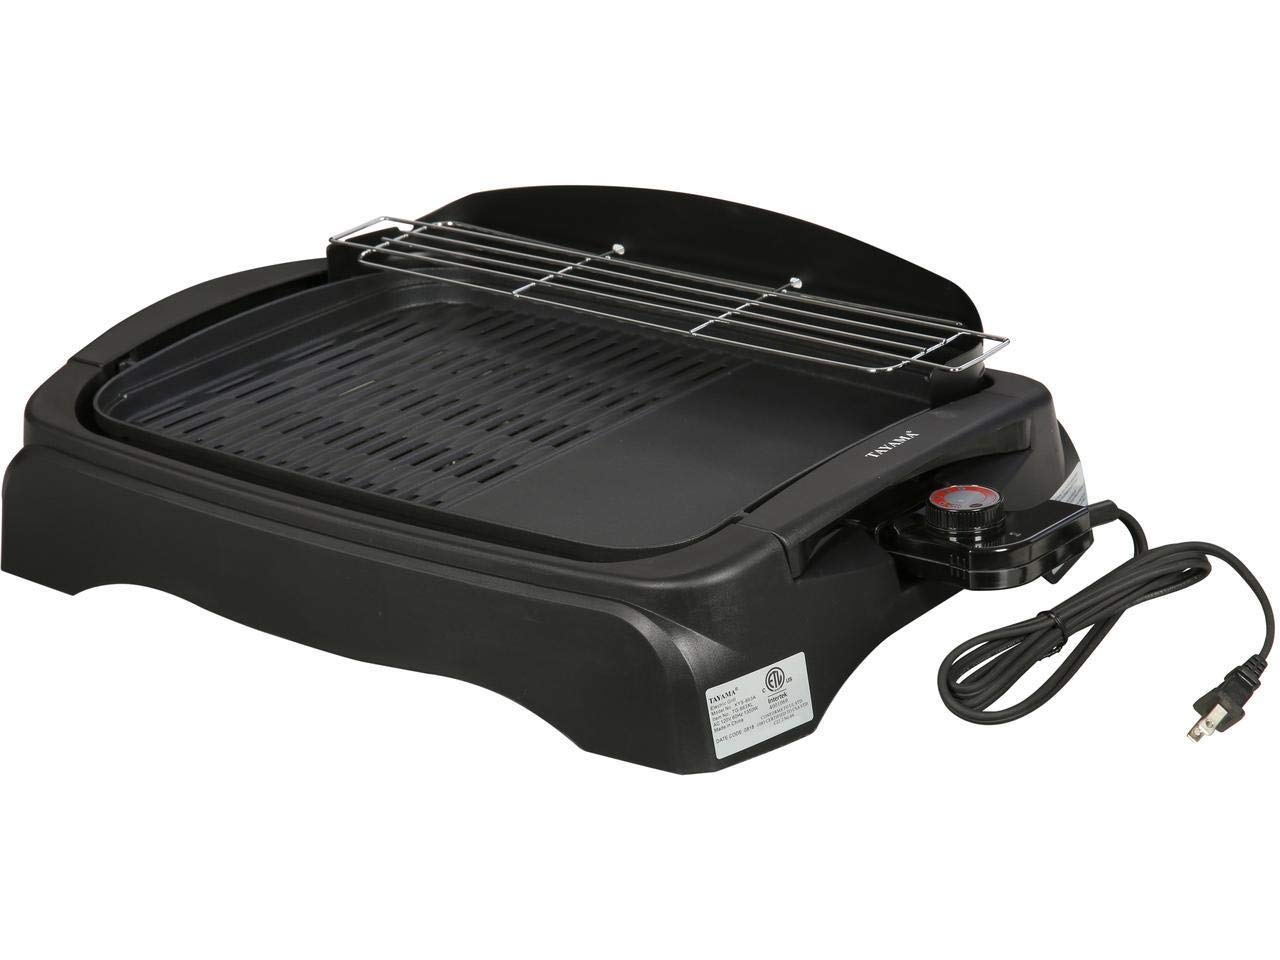 Tayama TG-863XL Non-Stick Electric Grill Ribbed and Solid Surface, Large, Black